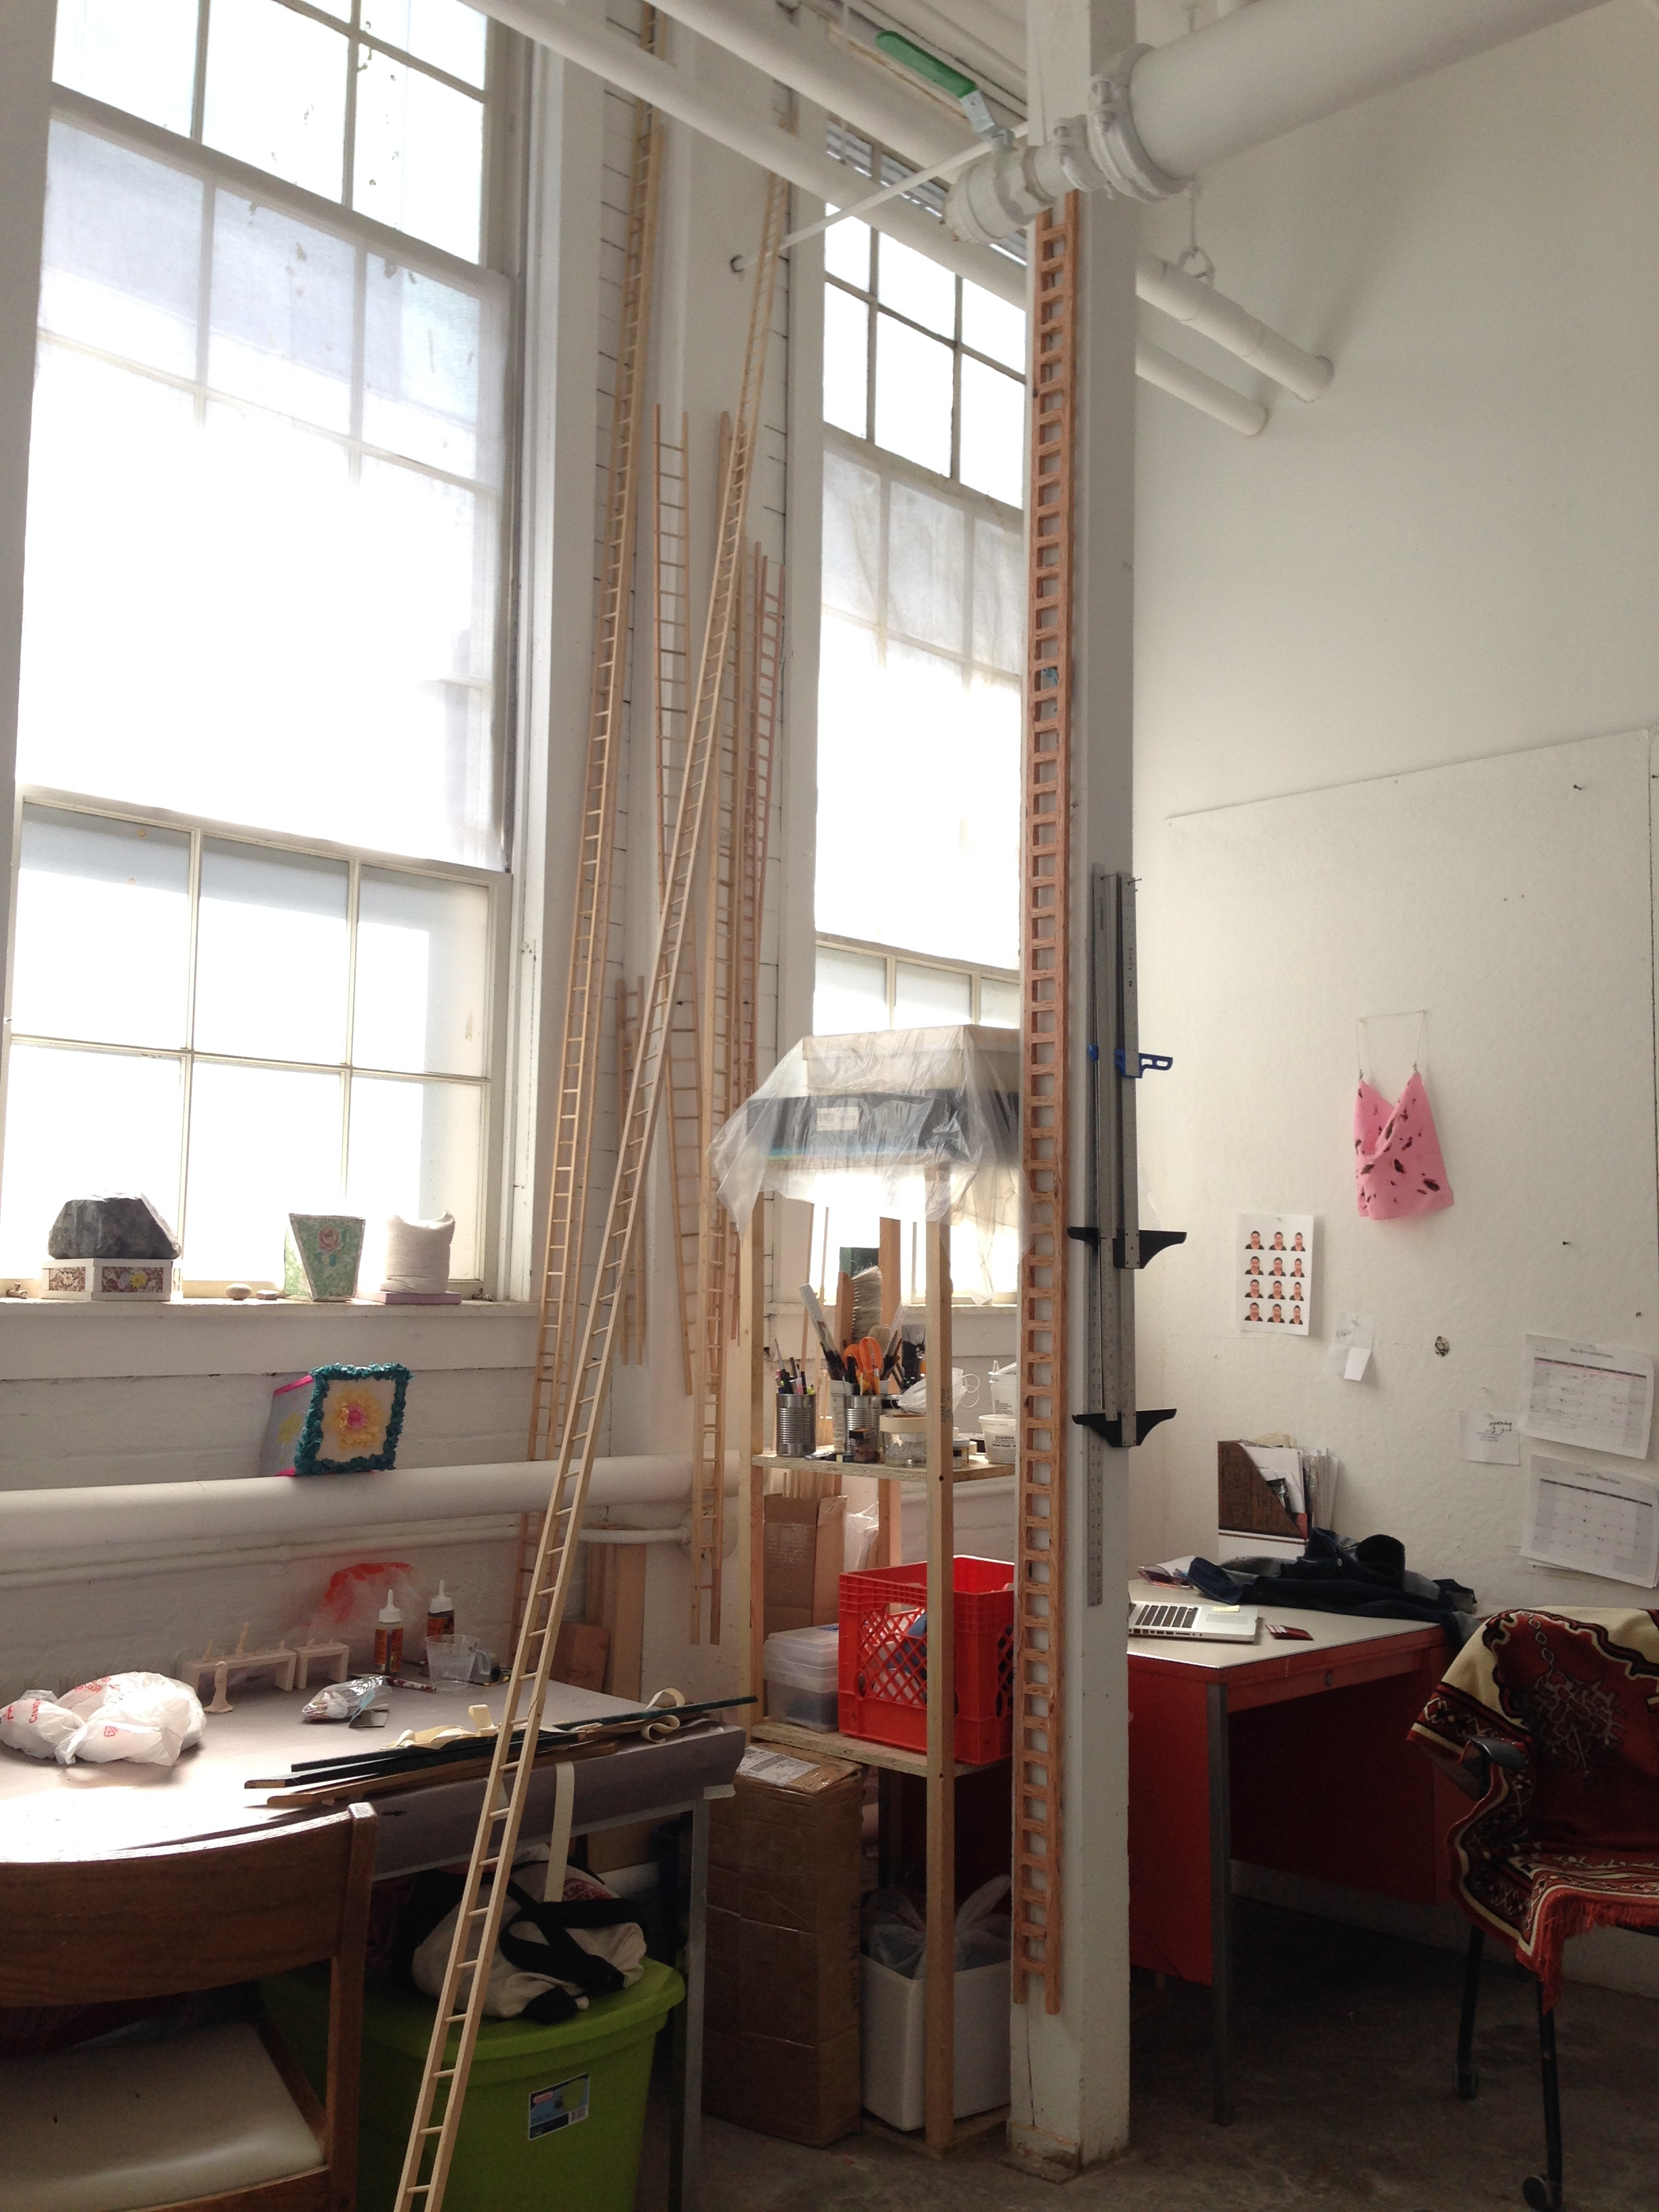 Connie Wong's studio / Ithaca, New York